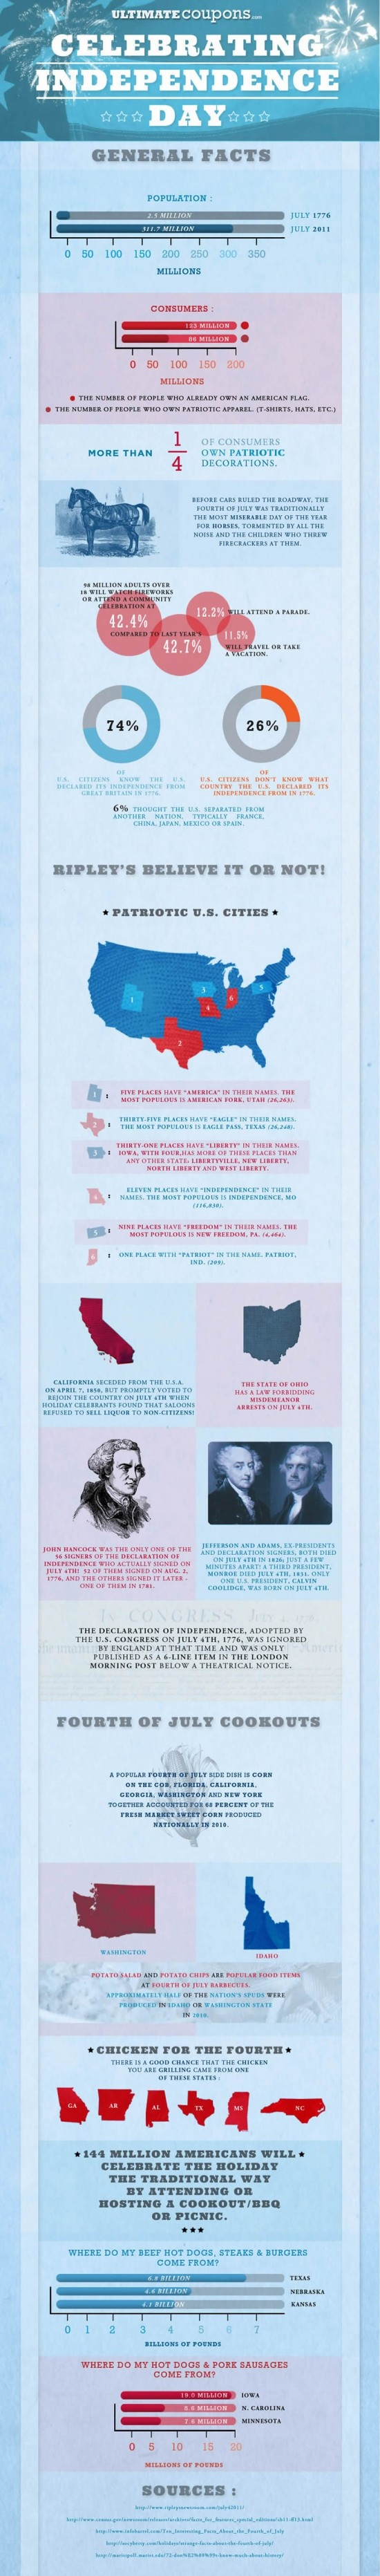 Random facts about the 4th of July